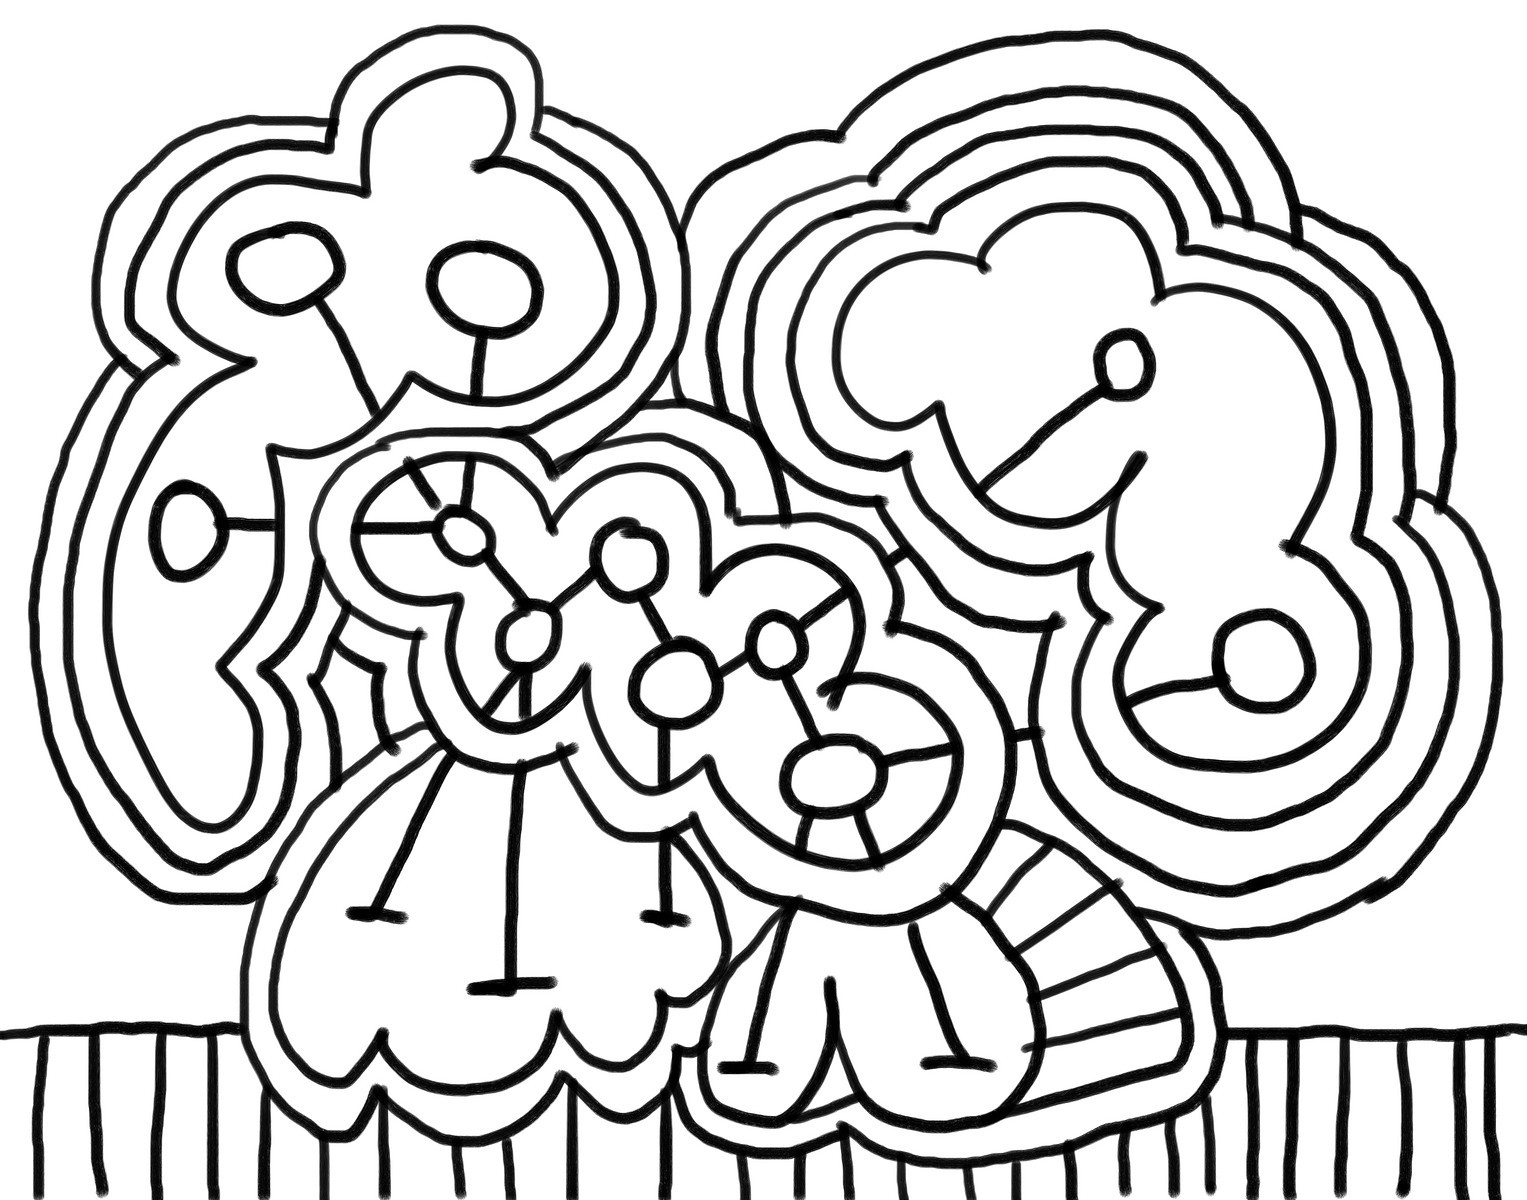 7 Habits Coloring Pages Free Download Best 7 Habits